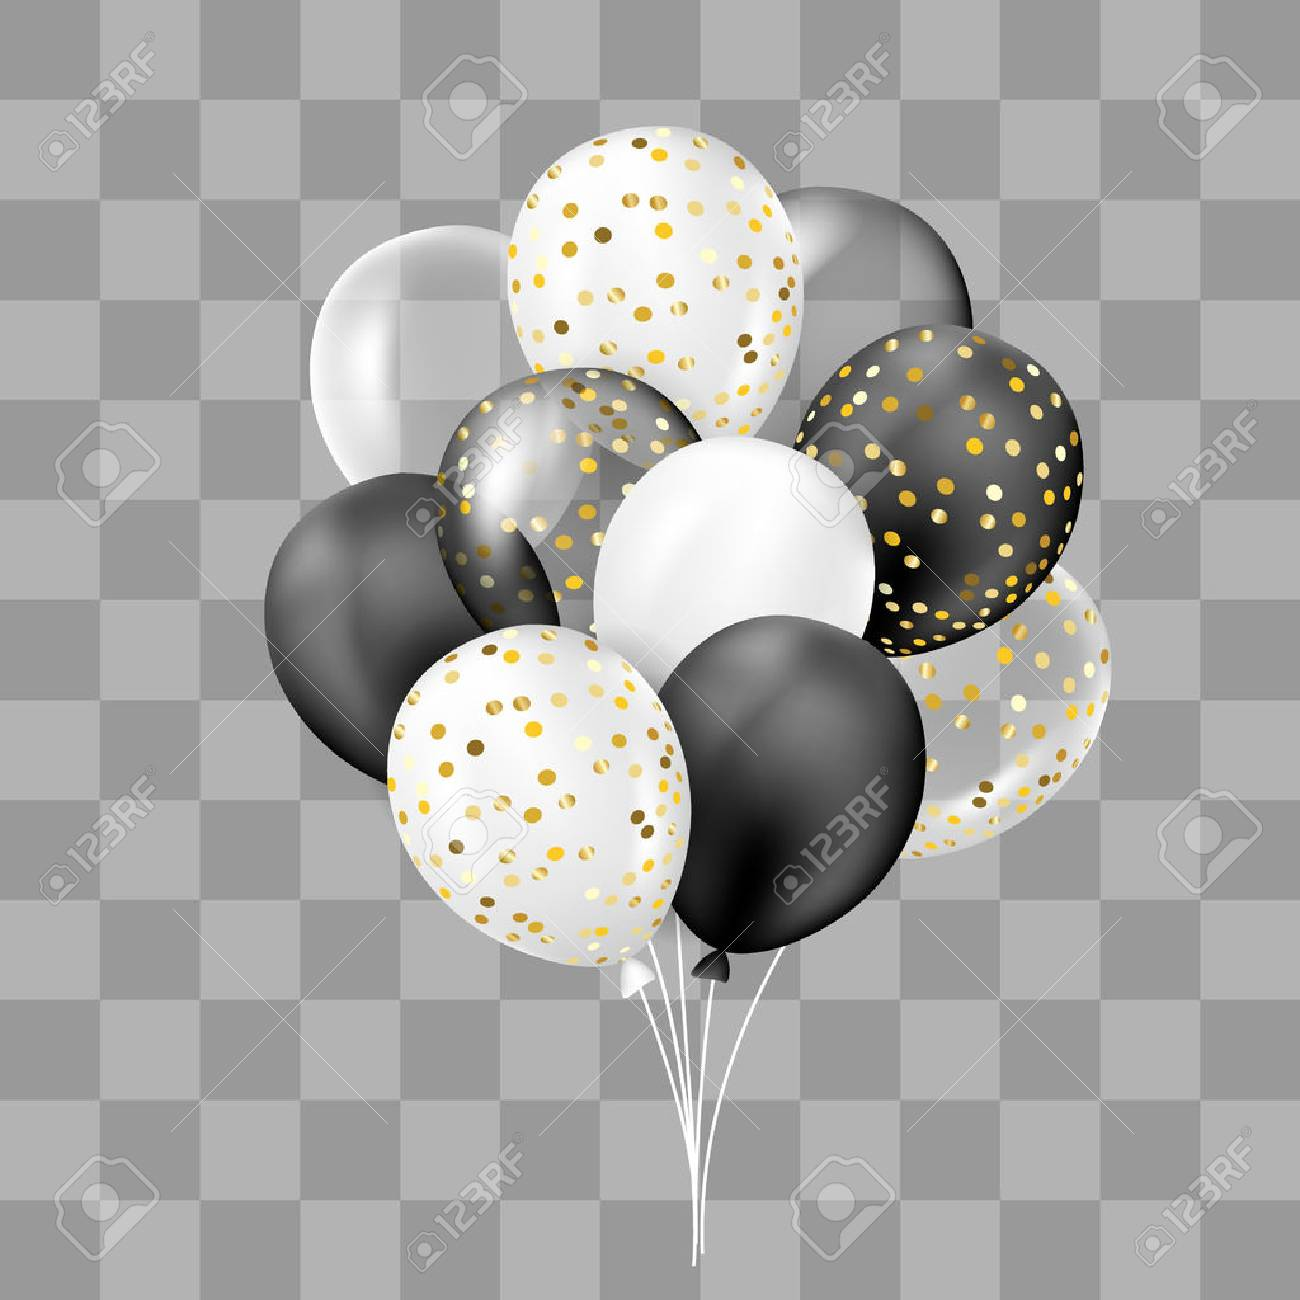 Black and white, transparent and with confetti balloons bunch. Decorations in realistic style for birthday, anniversary or party design. - 82044606